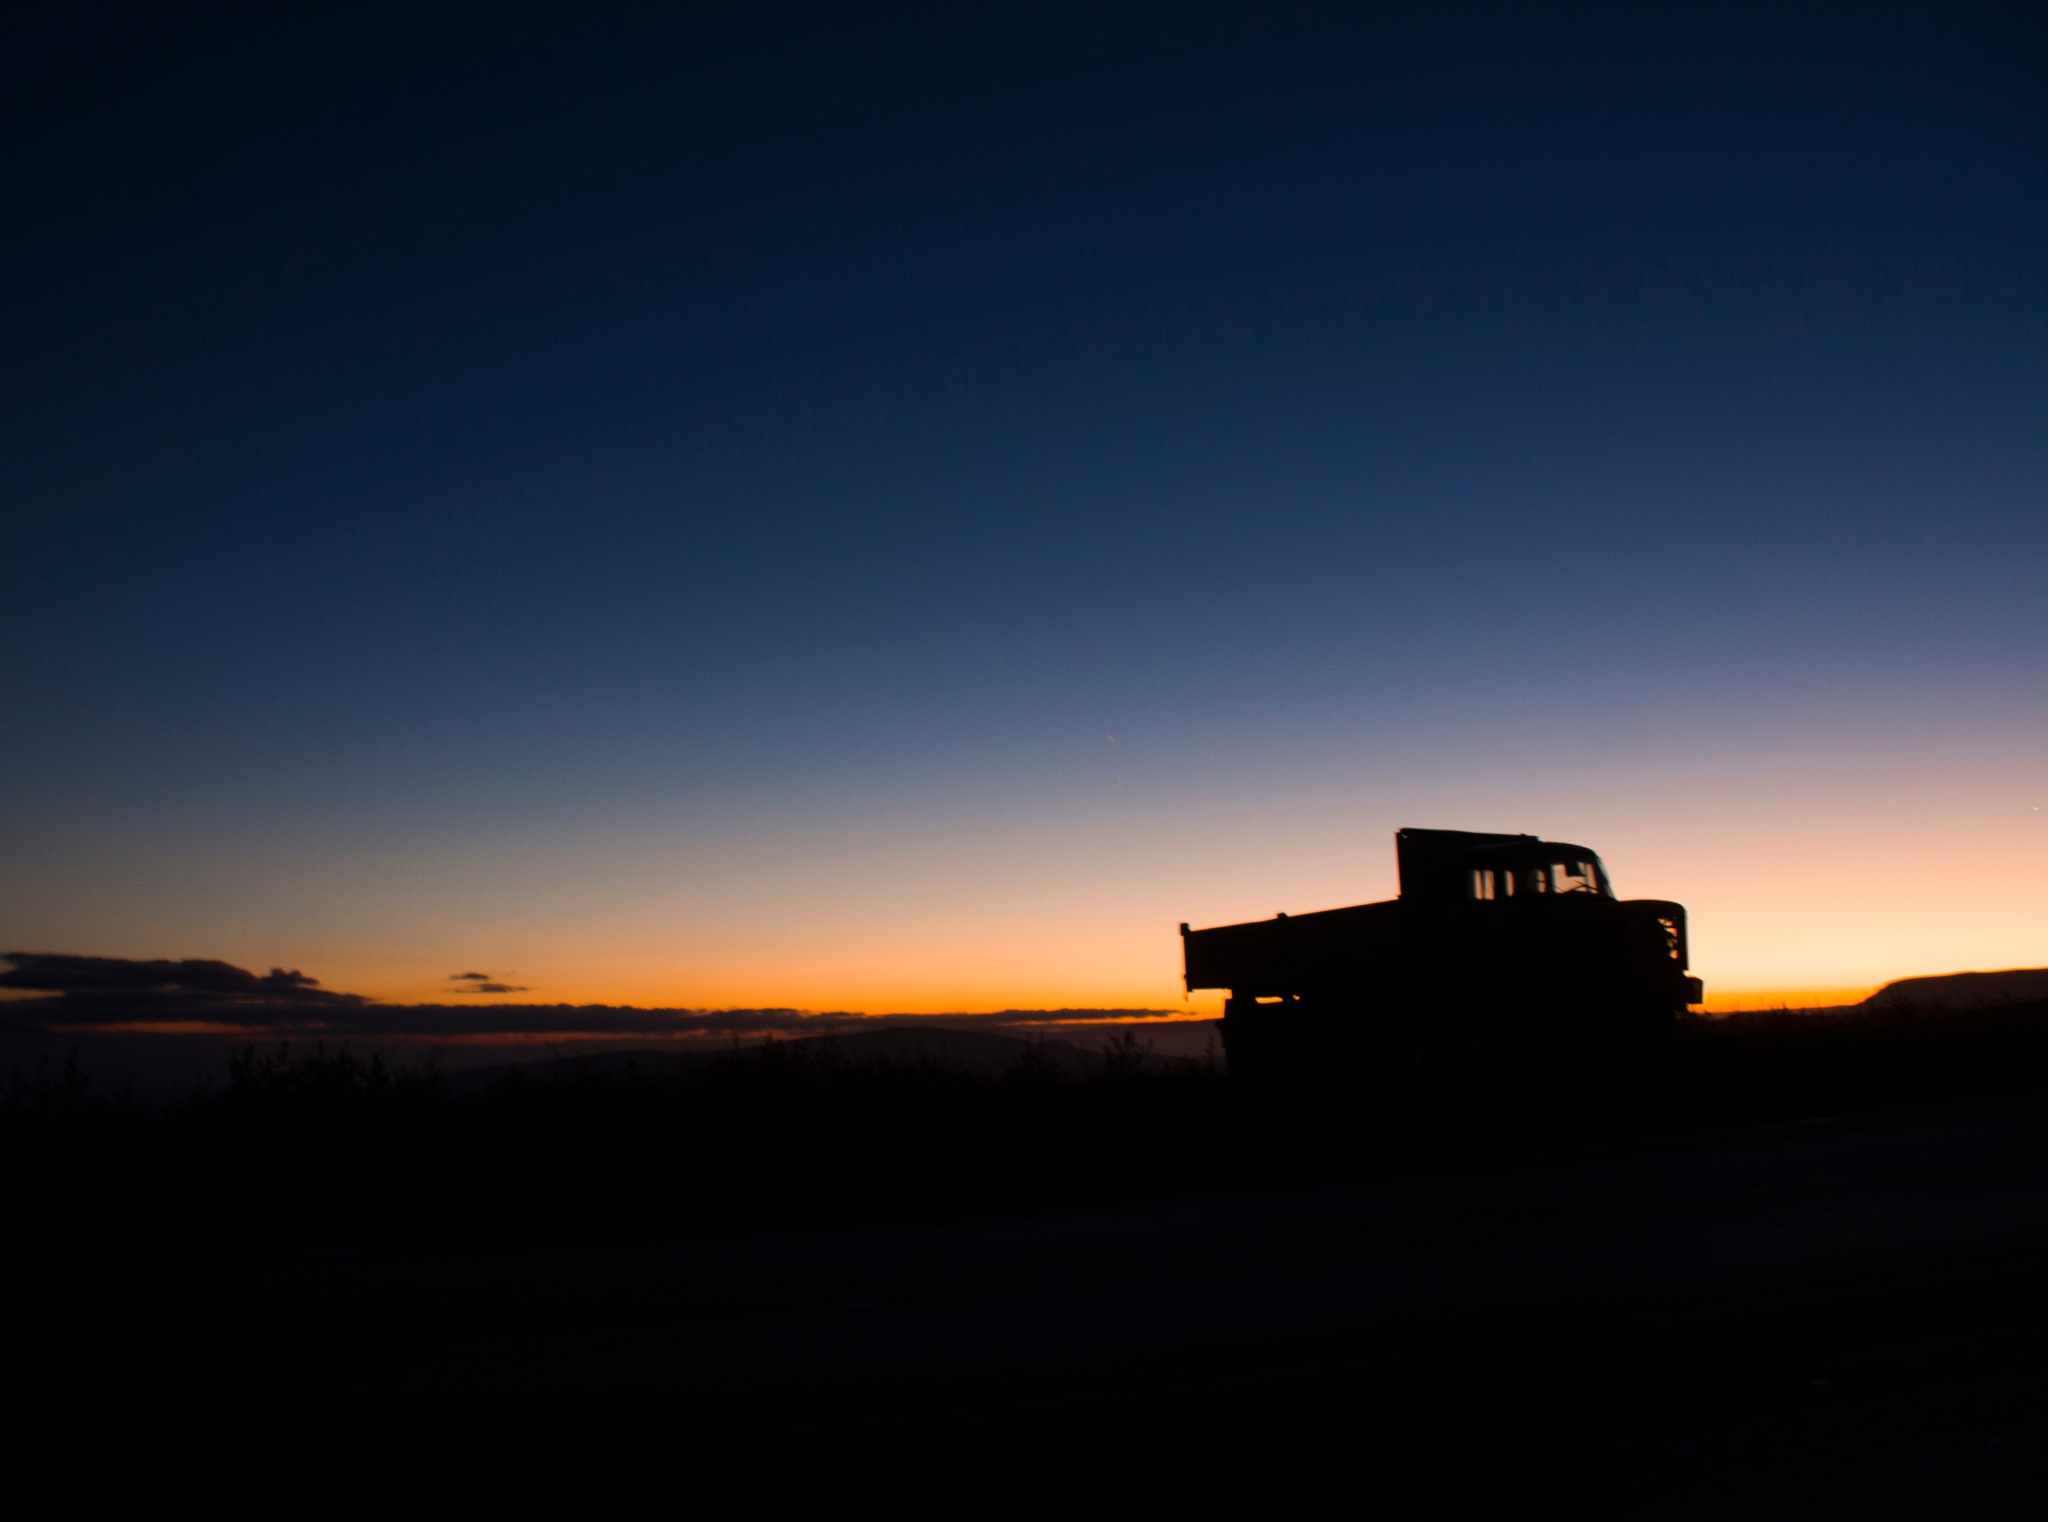 Truck silhouette by Antar Daâdouche